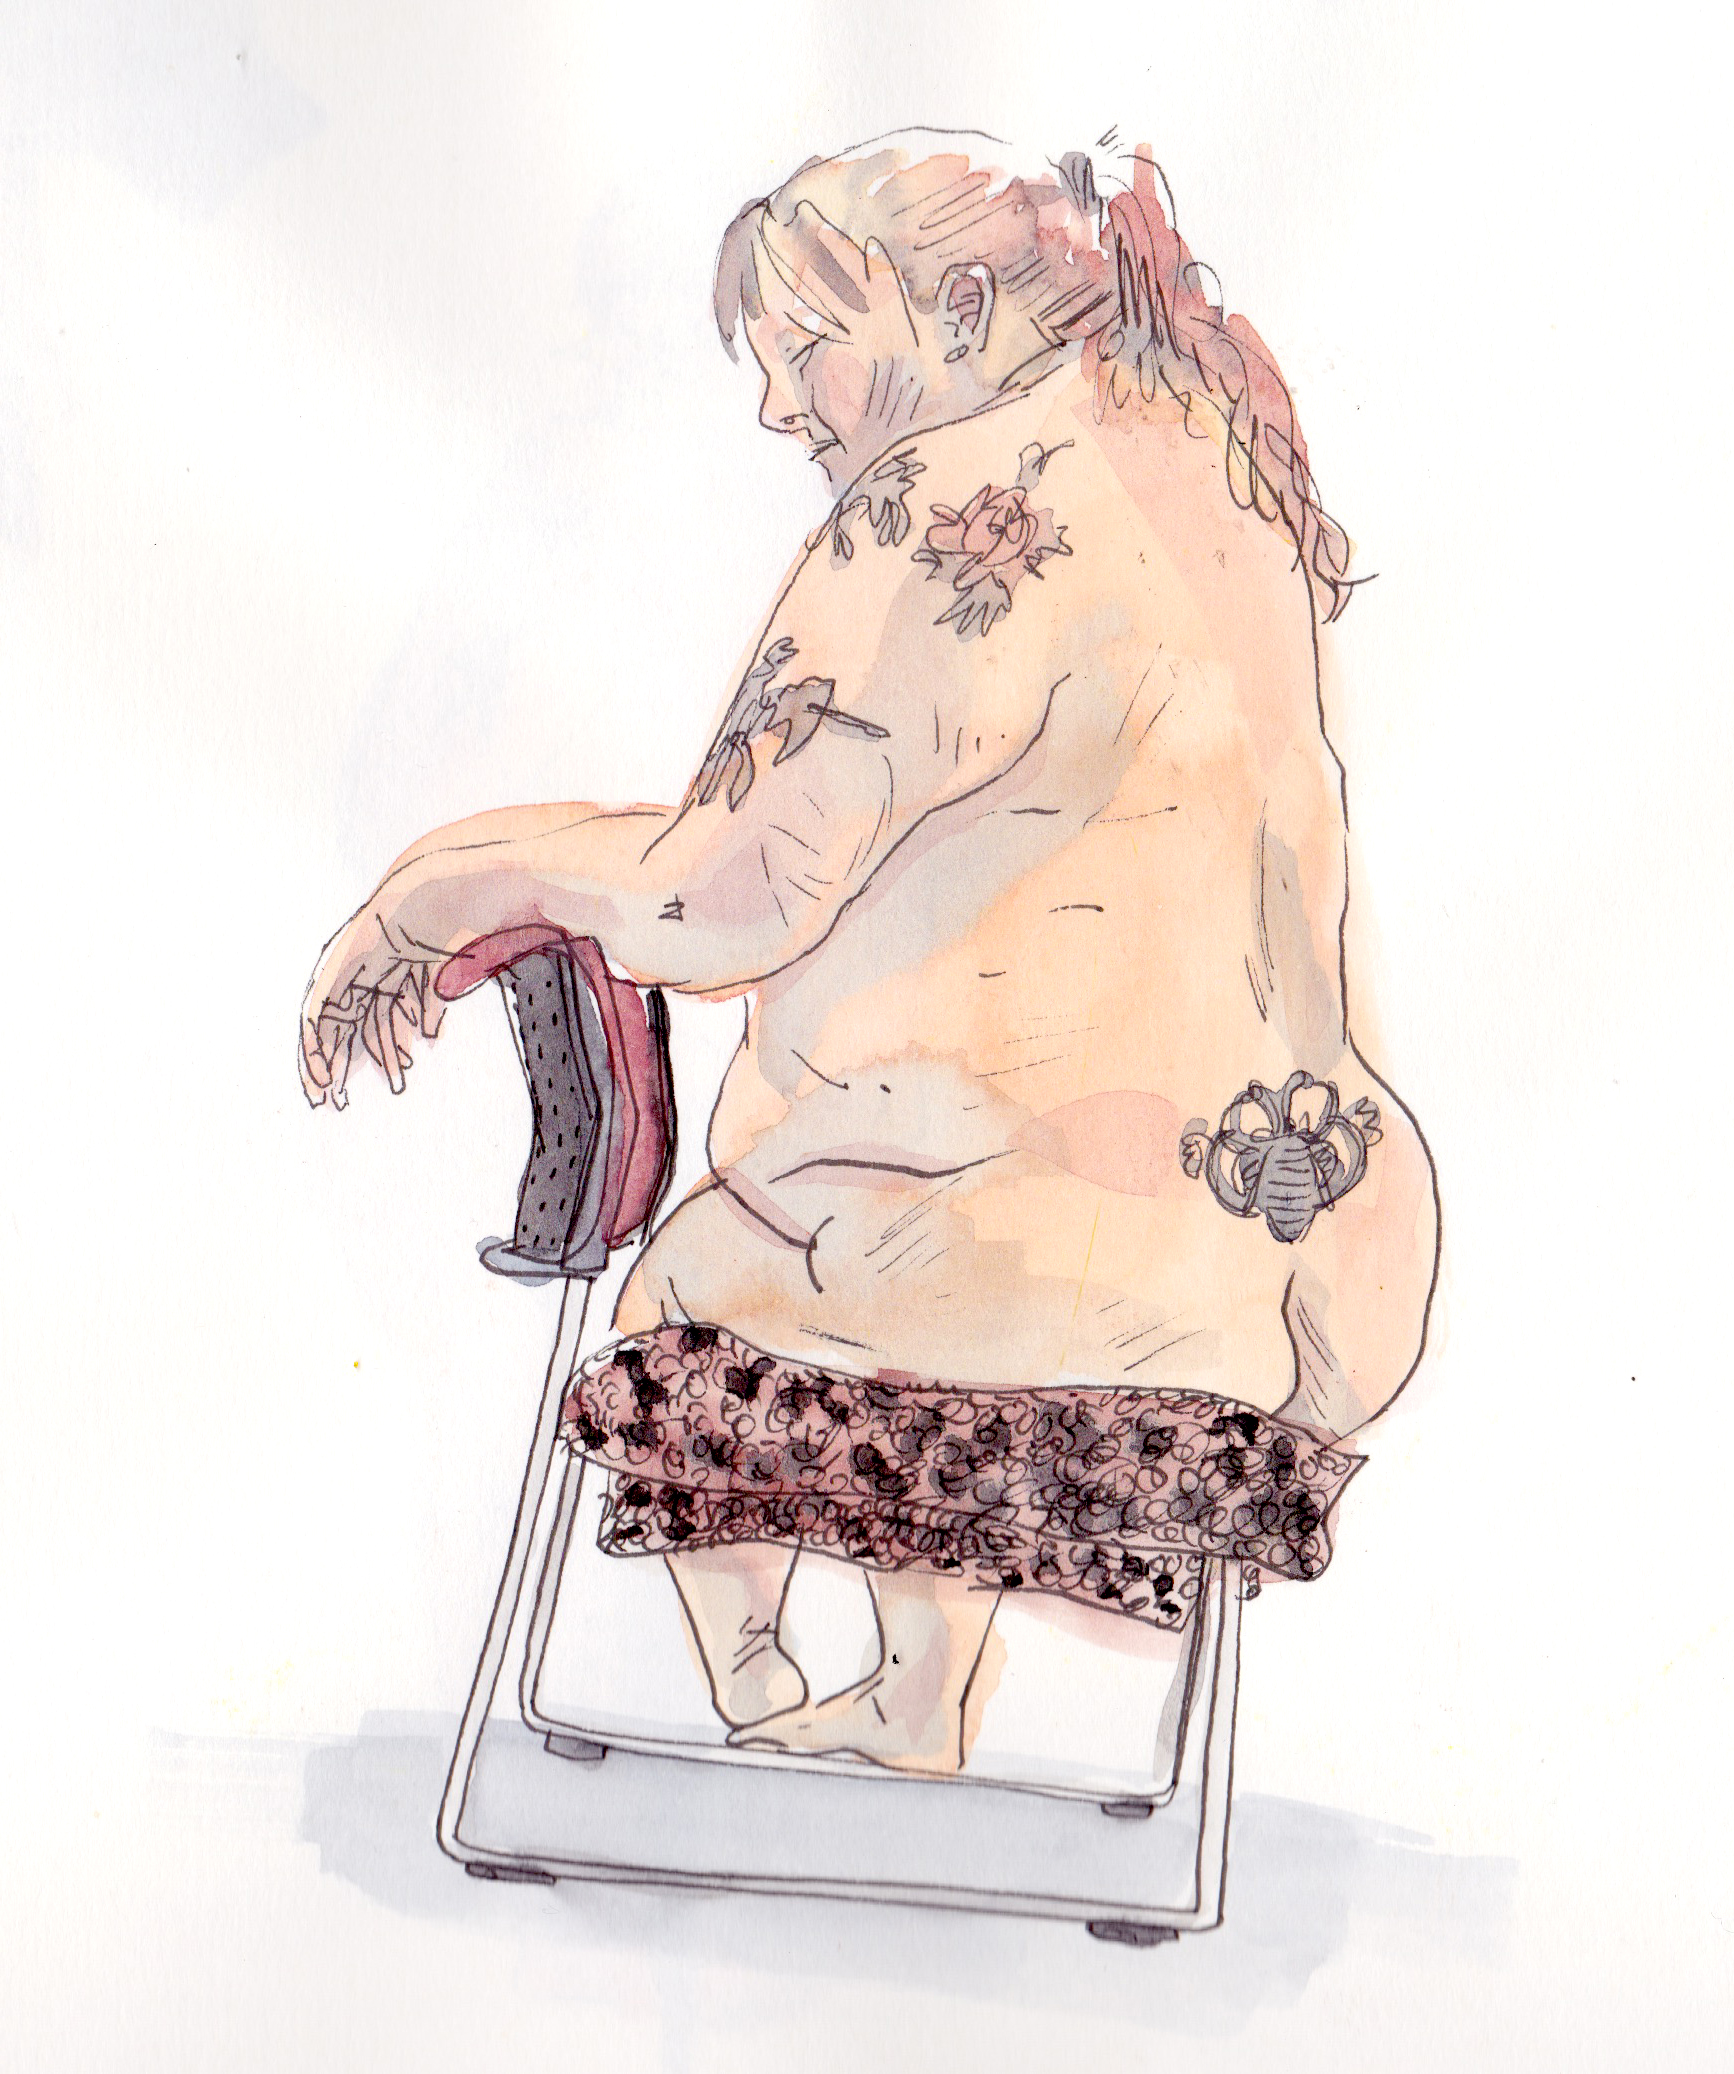 lifedrawing 02